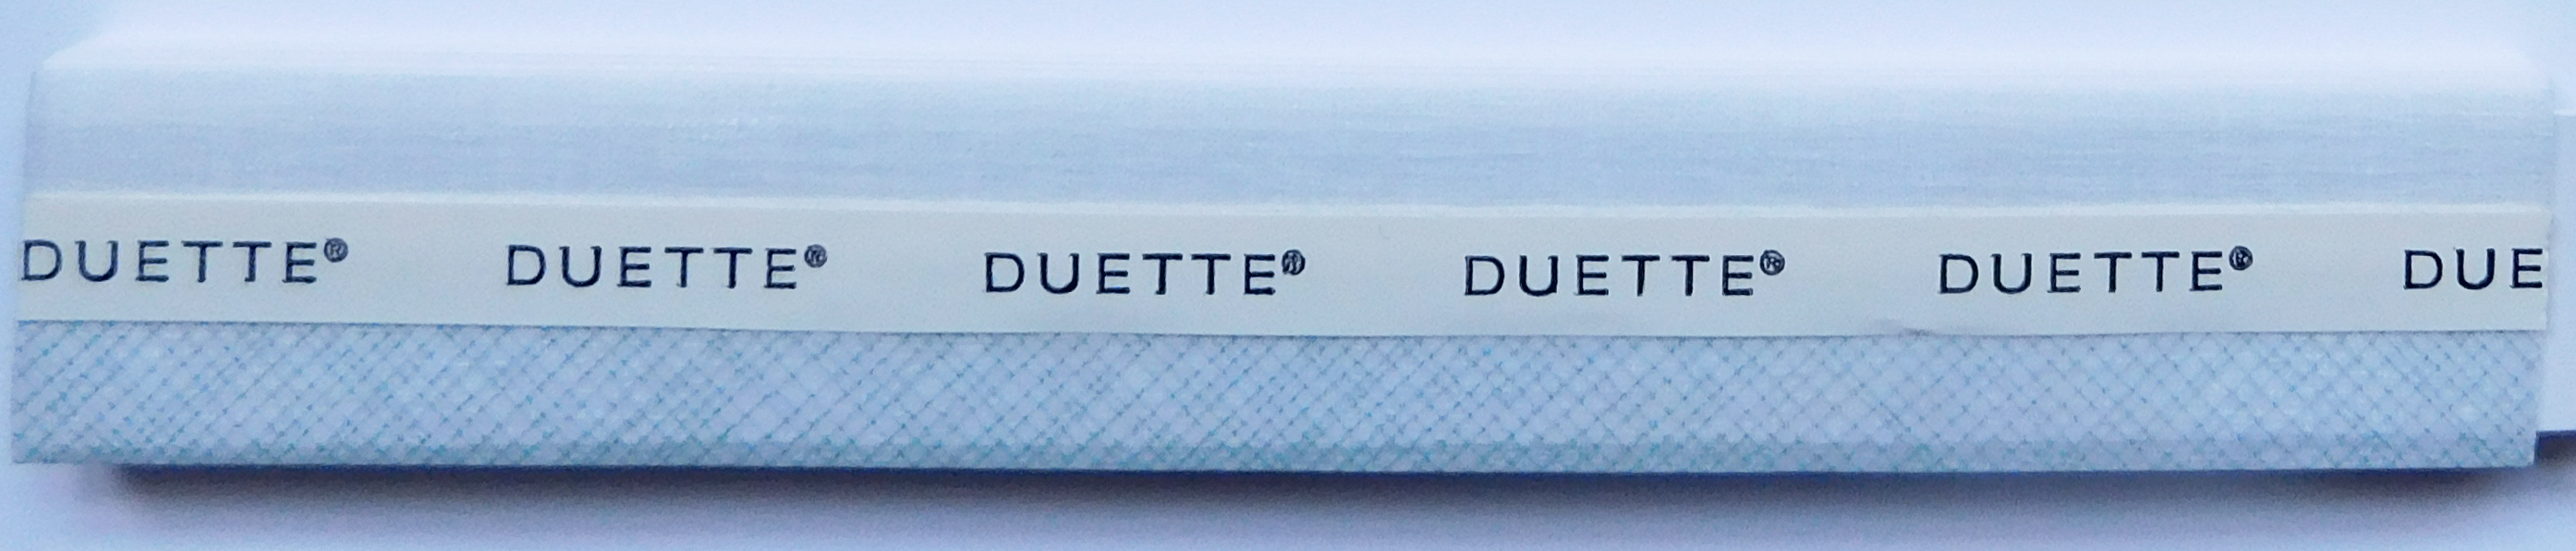 Divel Ether Duette Blind Fabric Sample